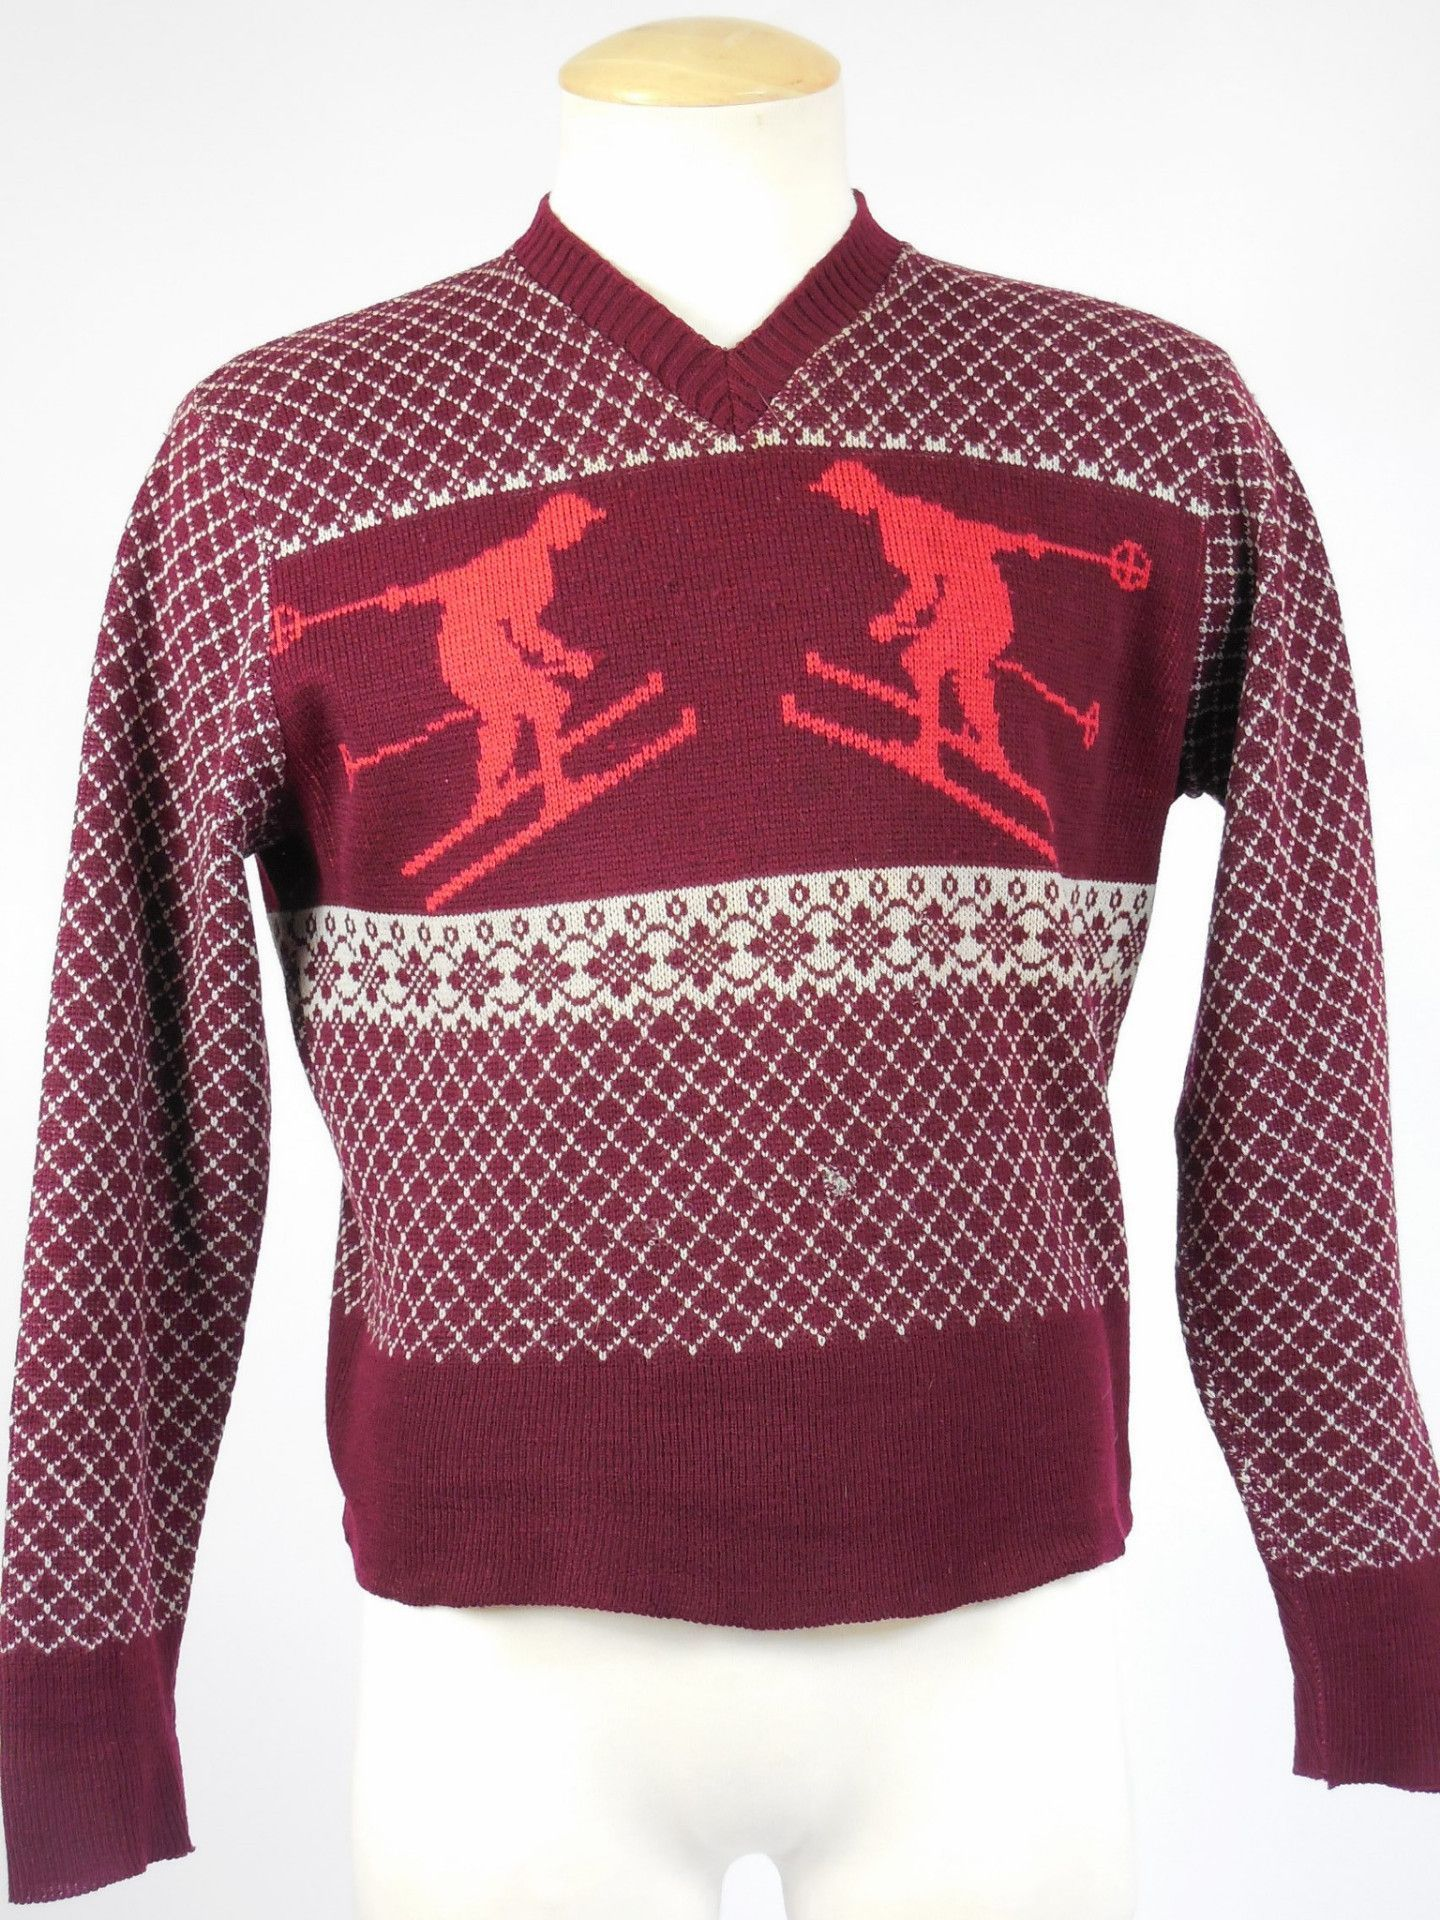 Vintage Jantzen 1940's 1950's mens or women's red patterned ski sweater 0INgQ1F6n